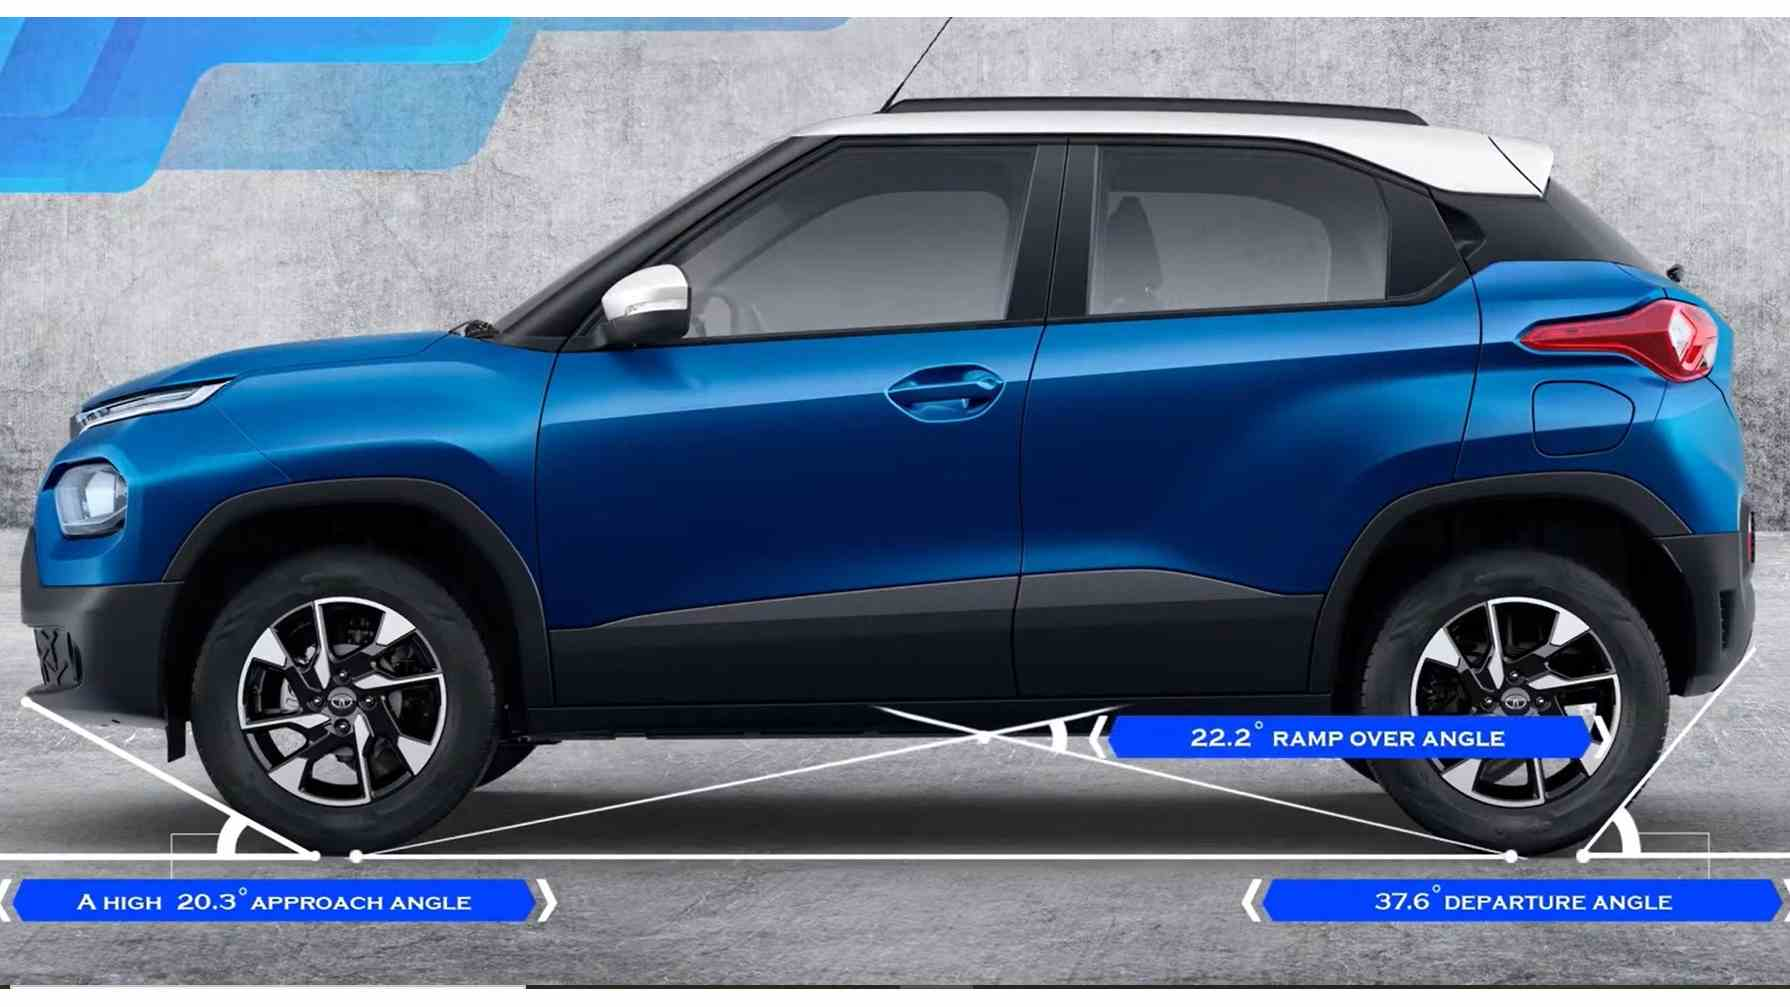 Tata even provided approach, departure and ramp-over angles for the Punch, something not necessarily expected of a small city car. Image: Tata Motors